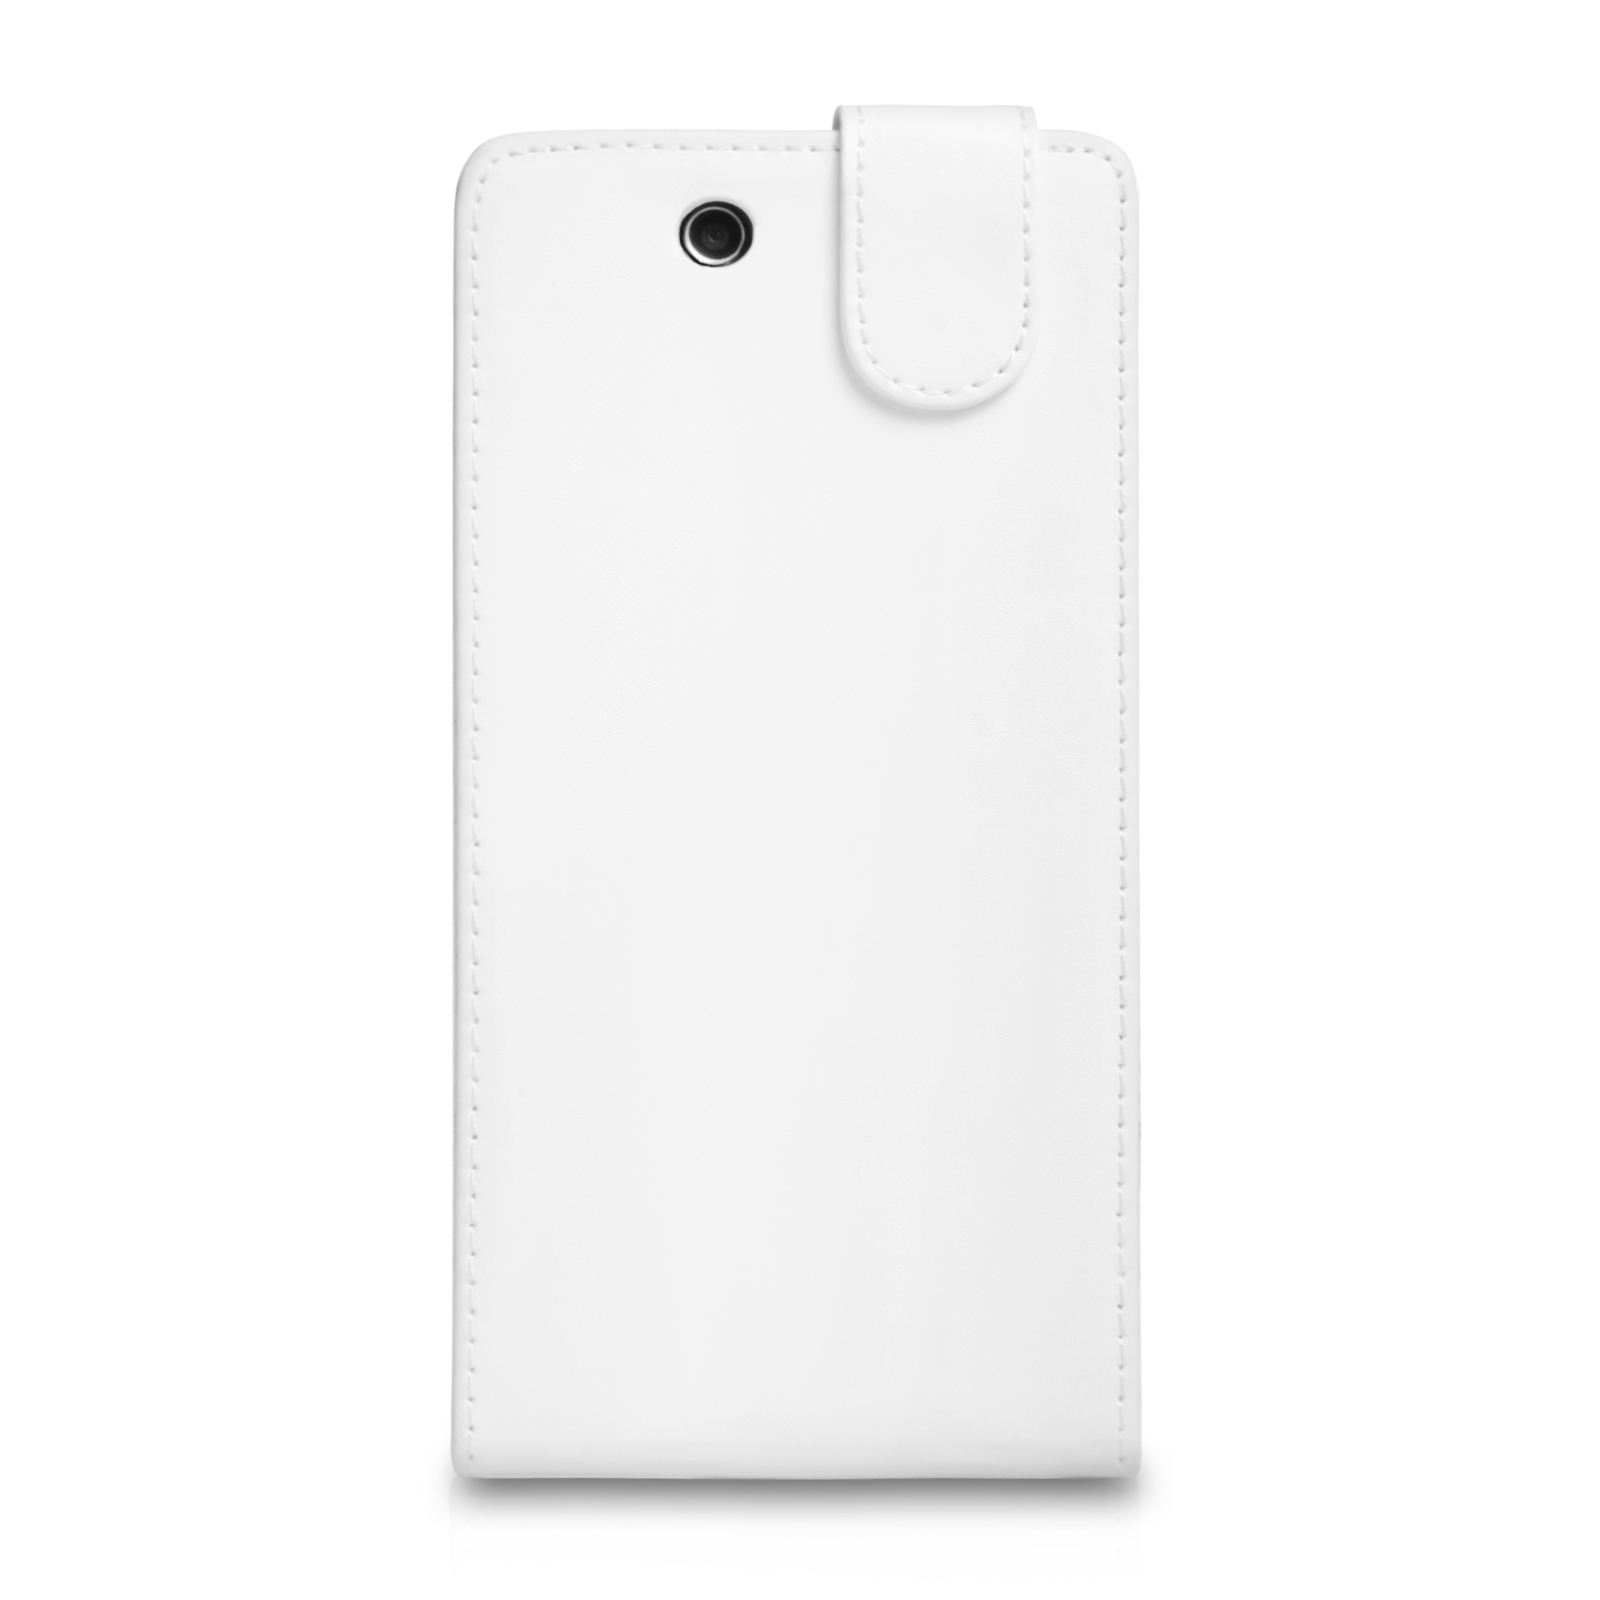 YouSave Sony Xperia Z Ultra Leather Effect Flip Case - White